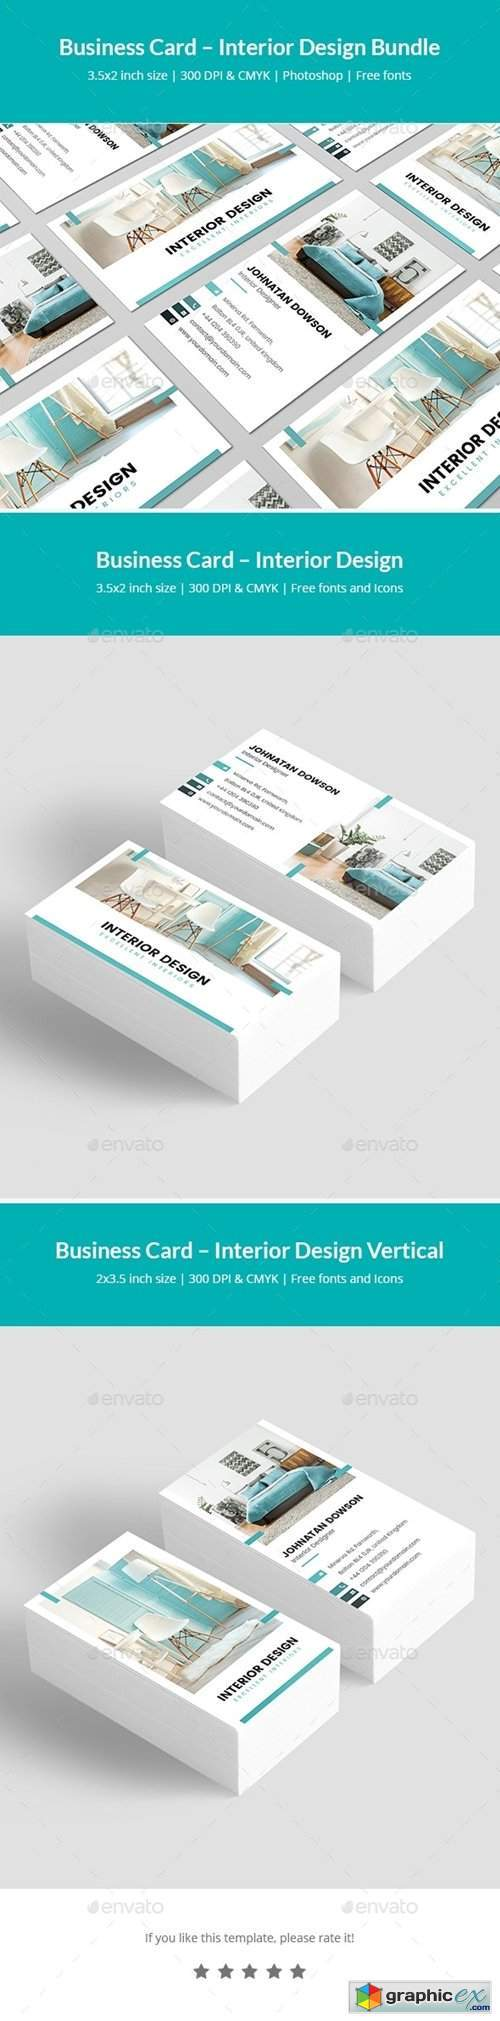 Business Card – Interior Design Bundle Print Templates 2 in 1